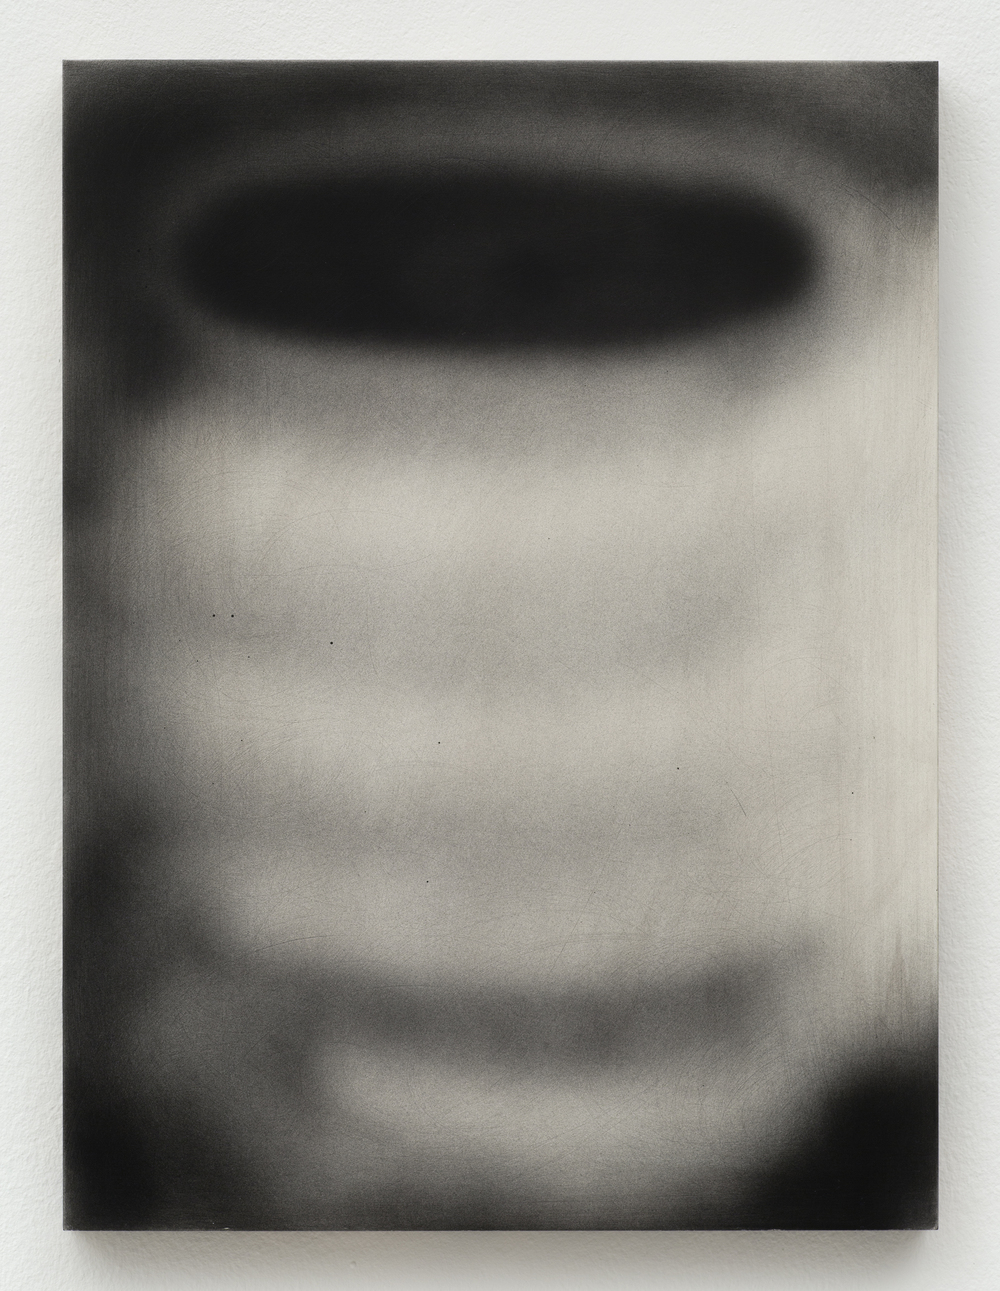 Phoebe Unwin, Cup, 2015, Indian ink on kaolin clay on board, 40.7 x 30.6 cm. Image courtesy of Wilkinson Gallery.